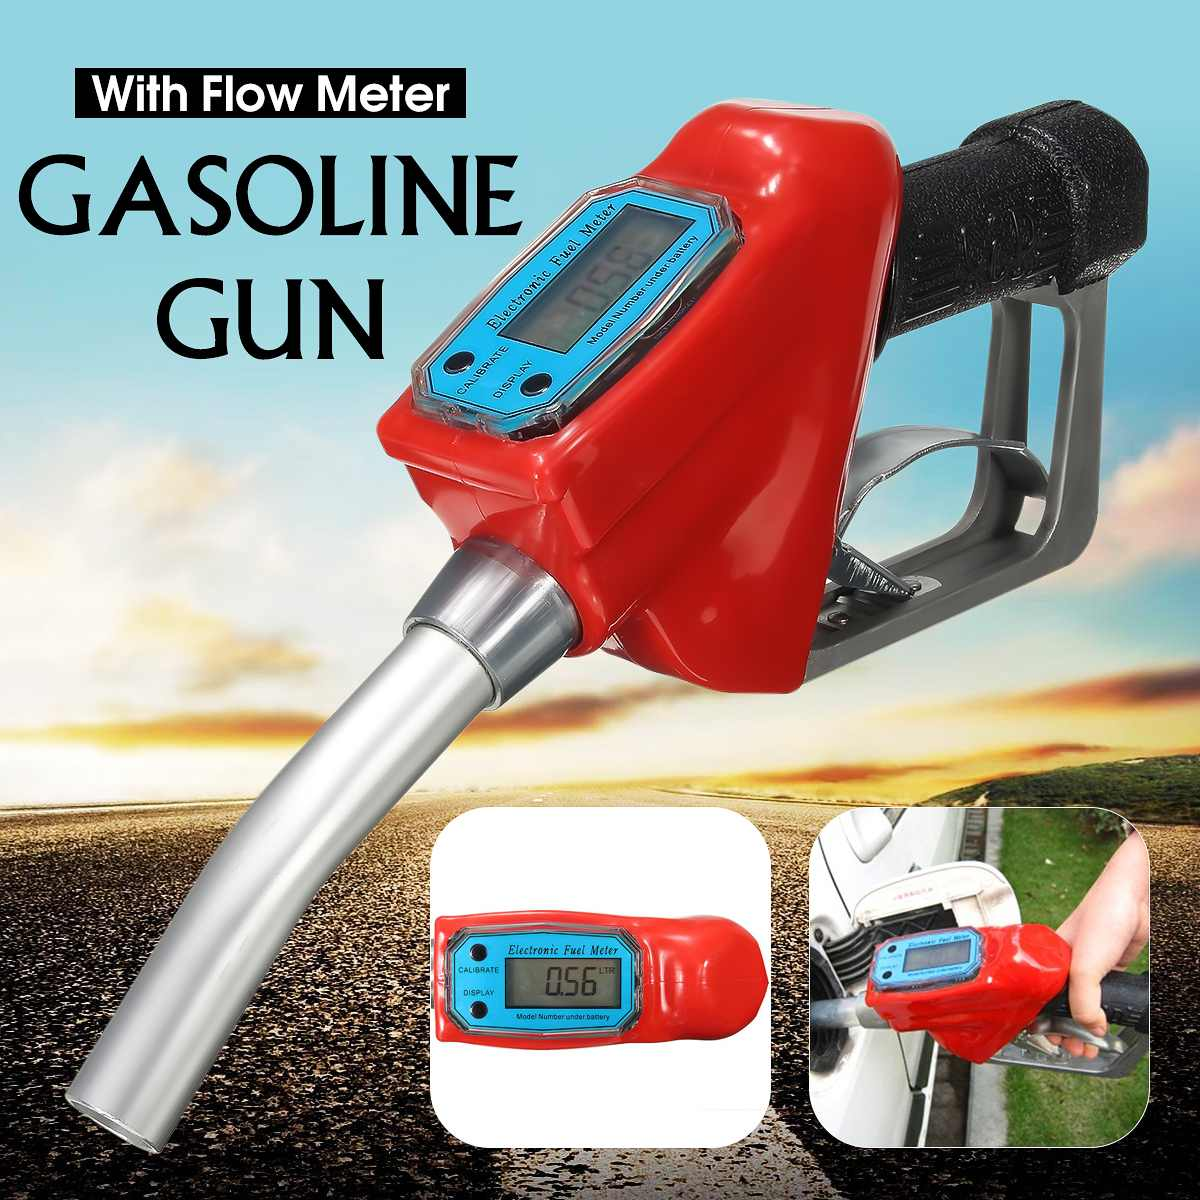 Digital Flow Meter Indicator Fuel Gasoline Petrol Oil Refueling for Gun Nozzle Aluminum Gas Station Refuel Injection ToolsDigital Flow Meter Indicator Fuel Gasoline Petrol Oil Refueling for Gun Nozzle Aluminum Gas Station Refuel Injection Tools